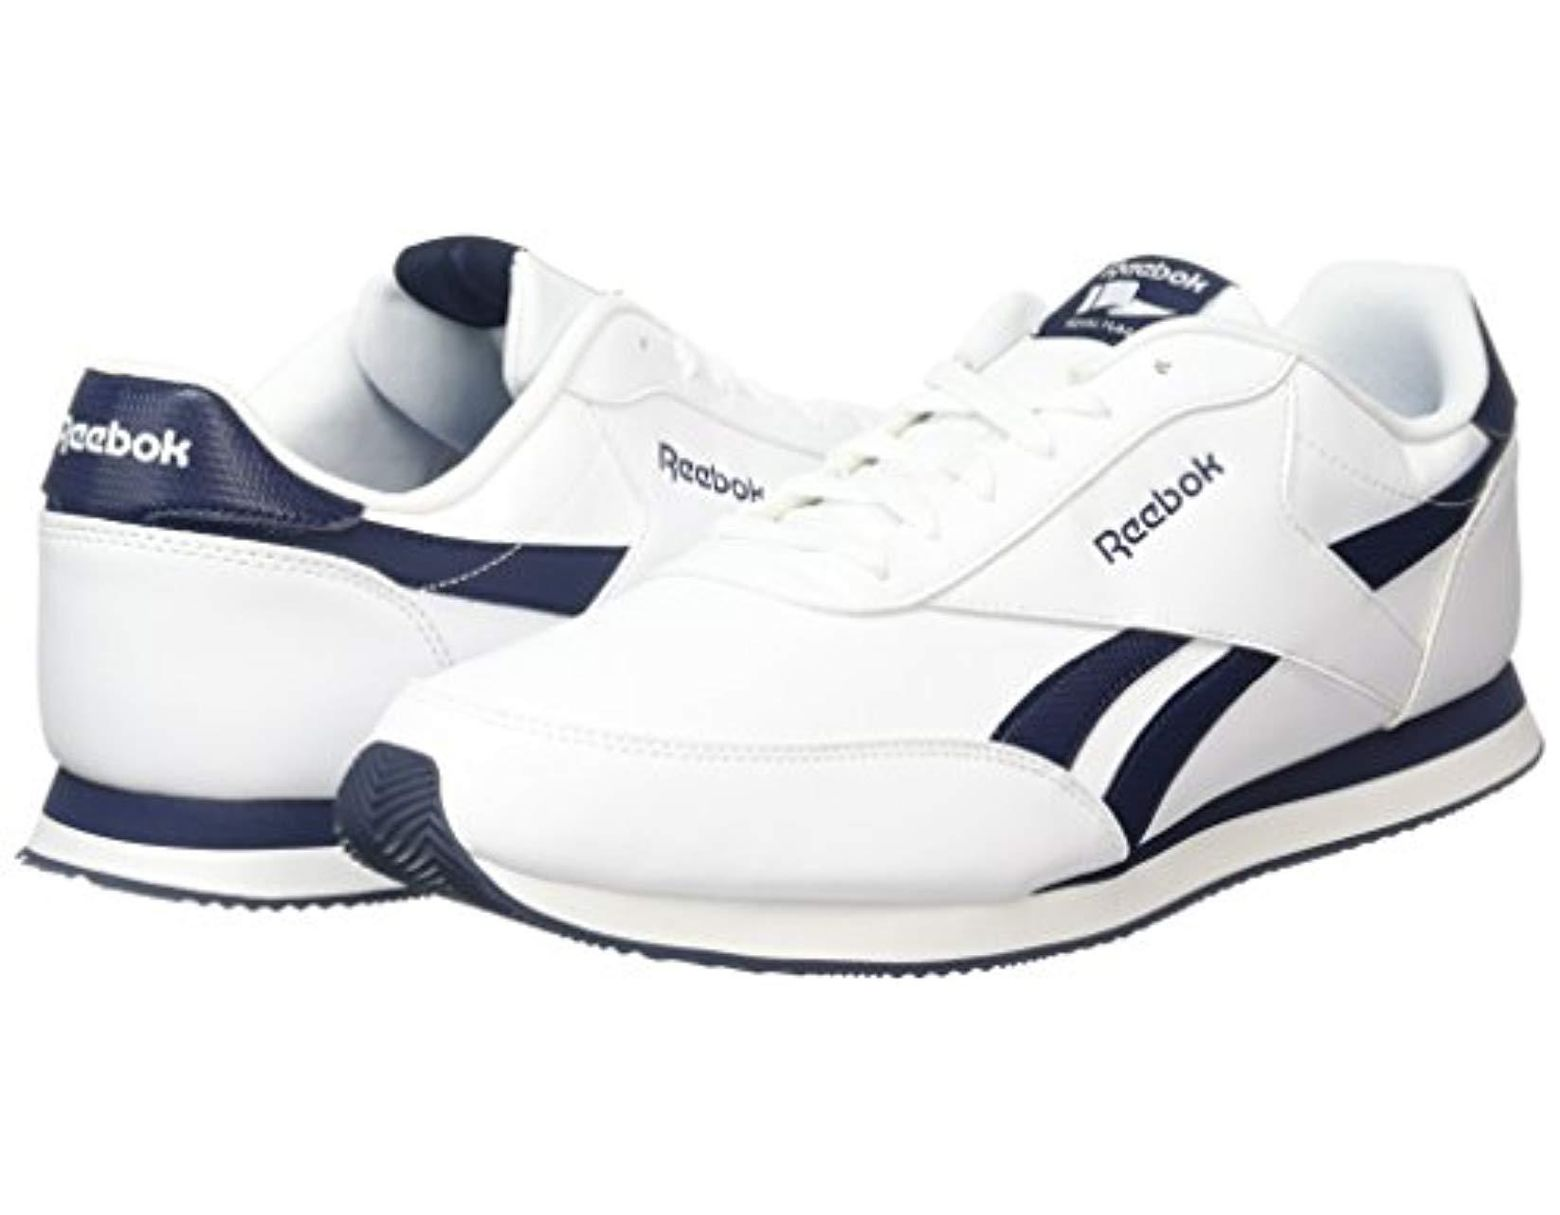 2707de6bab88b Reebok Royal Cl Jog 2l Gymnastics Shoes in White for Men - Save 32% - Lyst